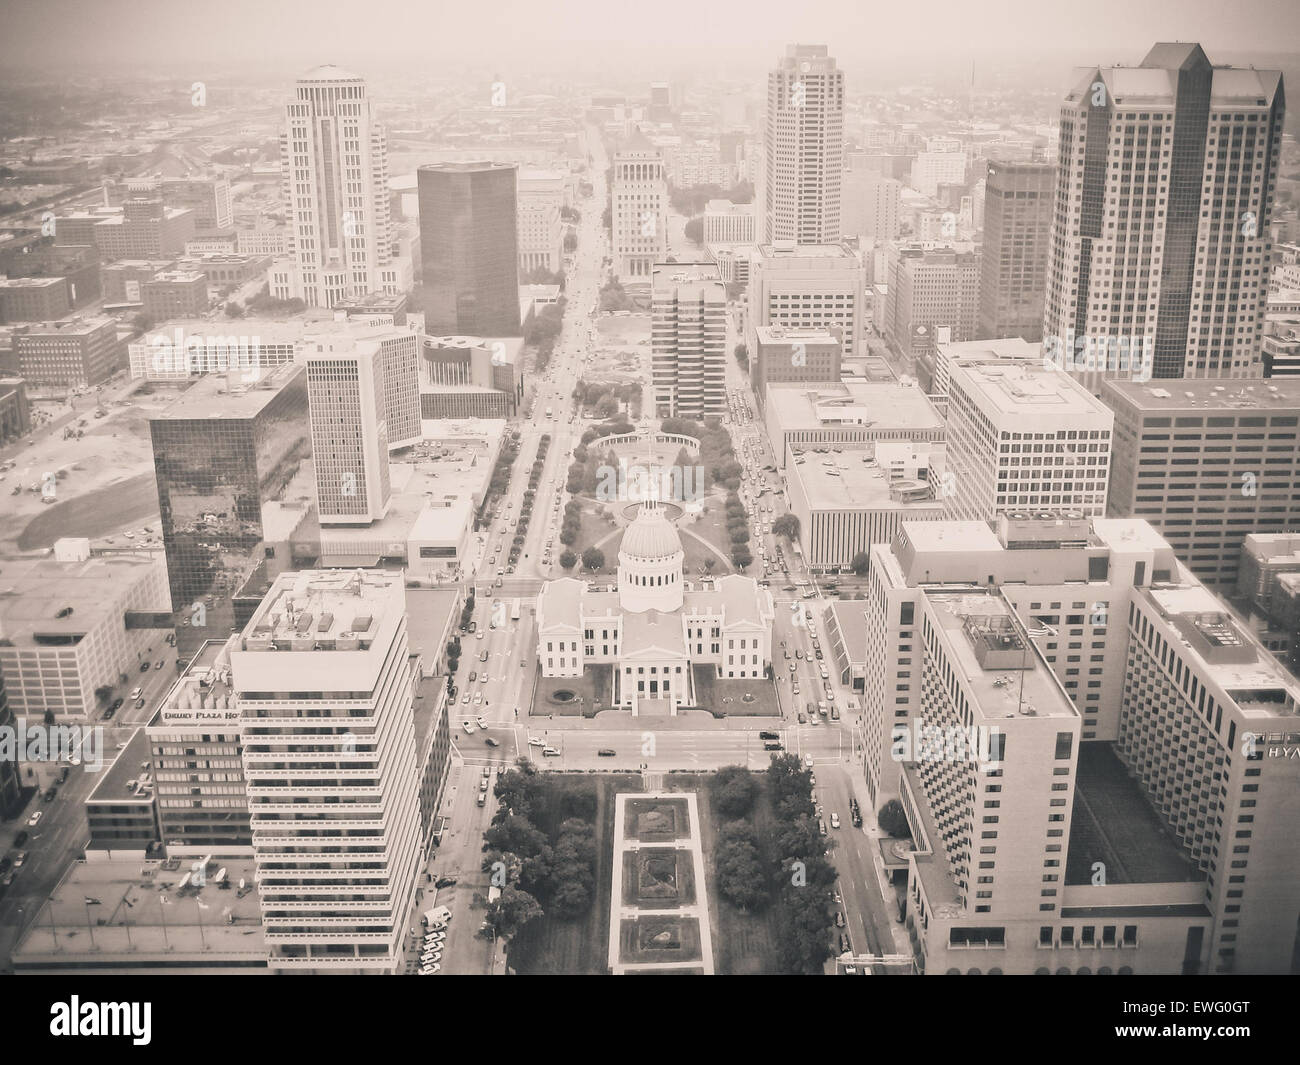 Monochrome City with Skyscrapers - Stock Image